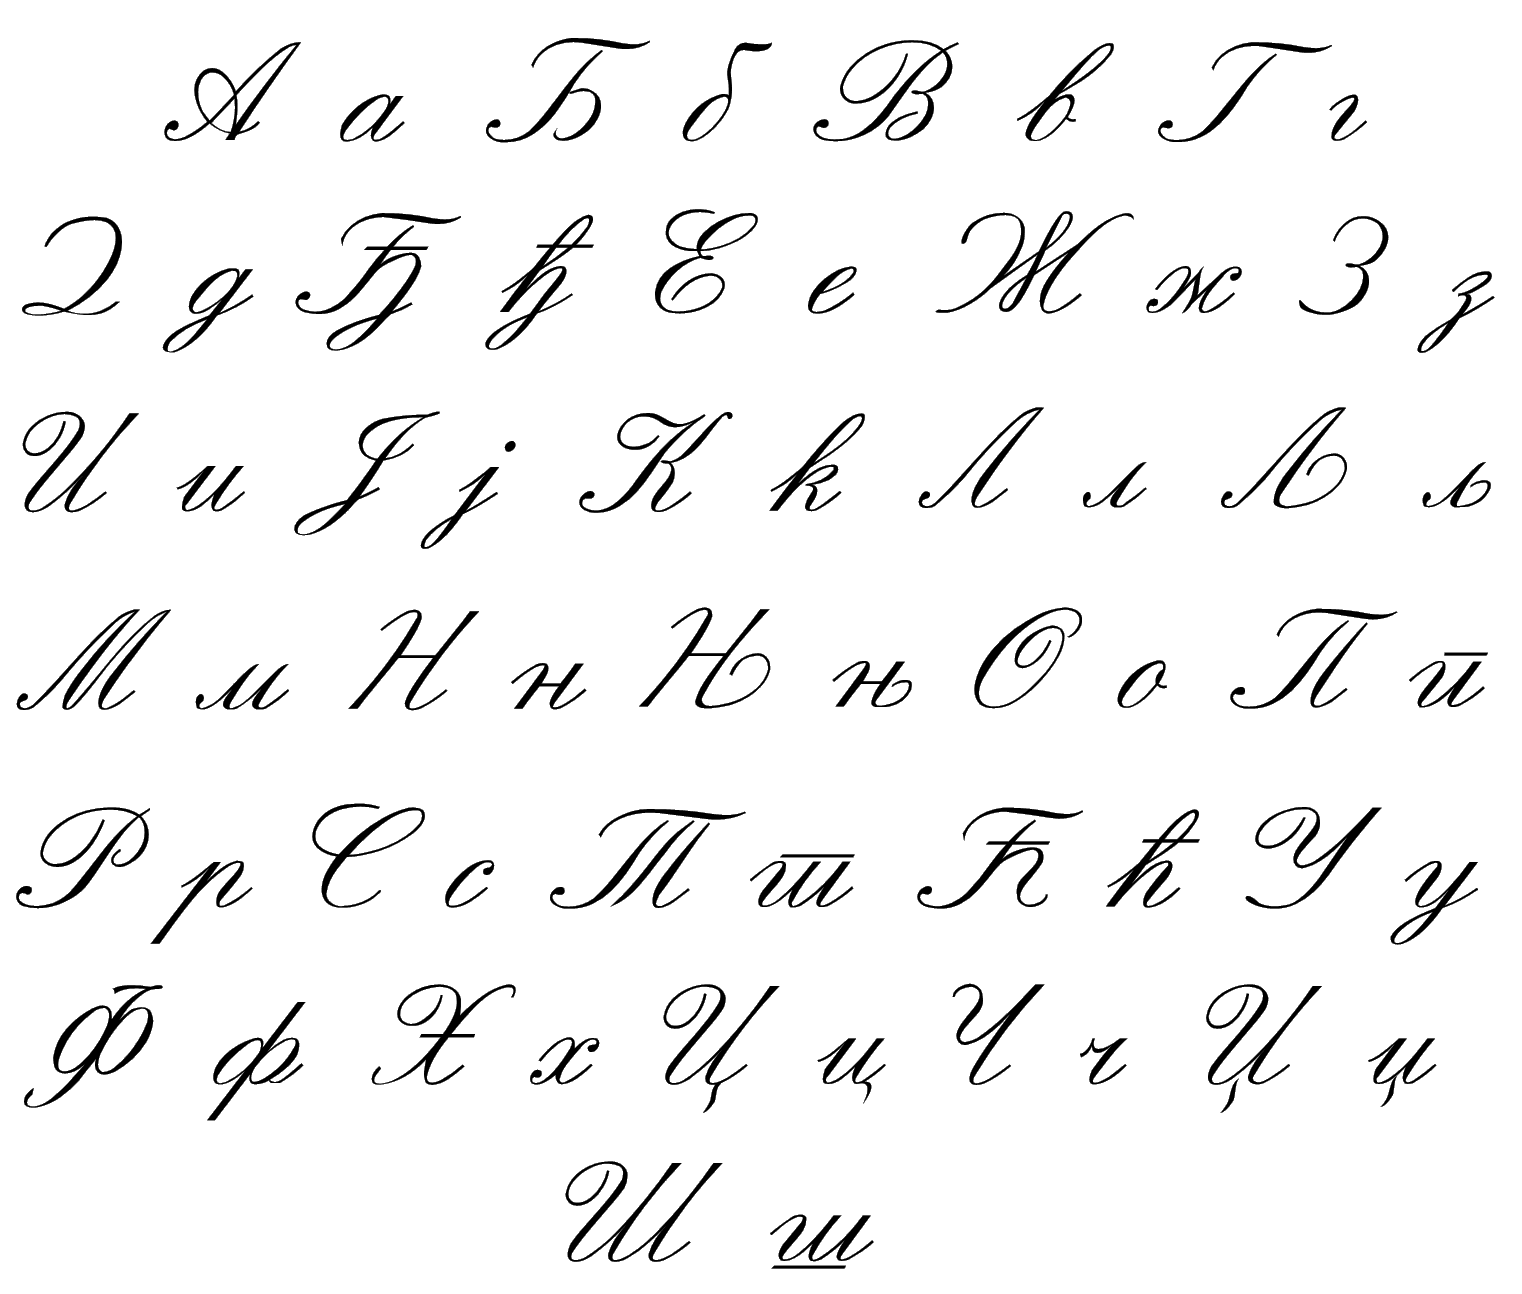 file serbian writing style around 1900 now partially